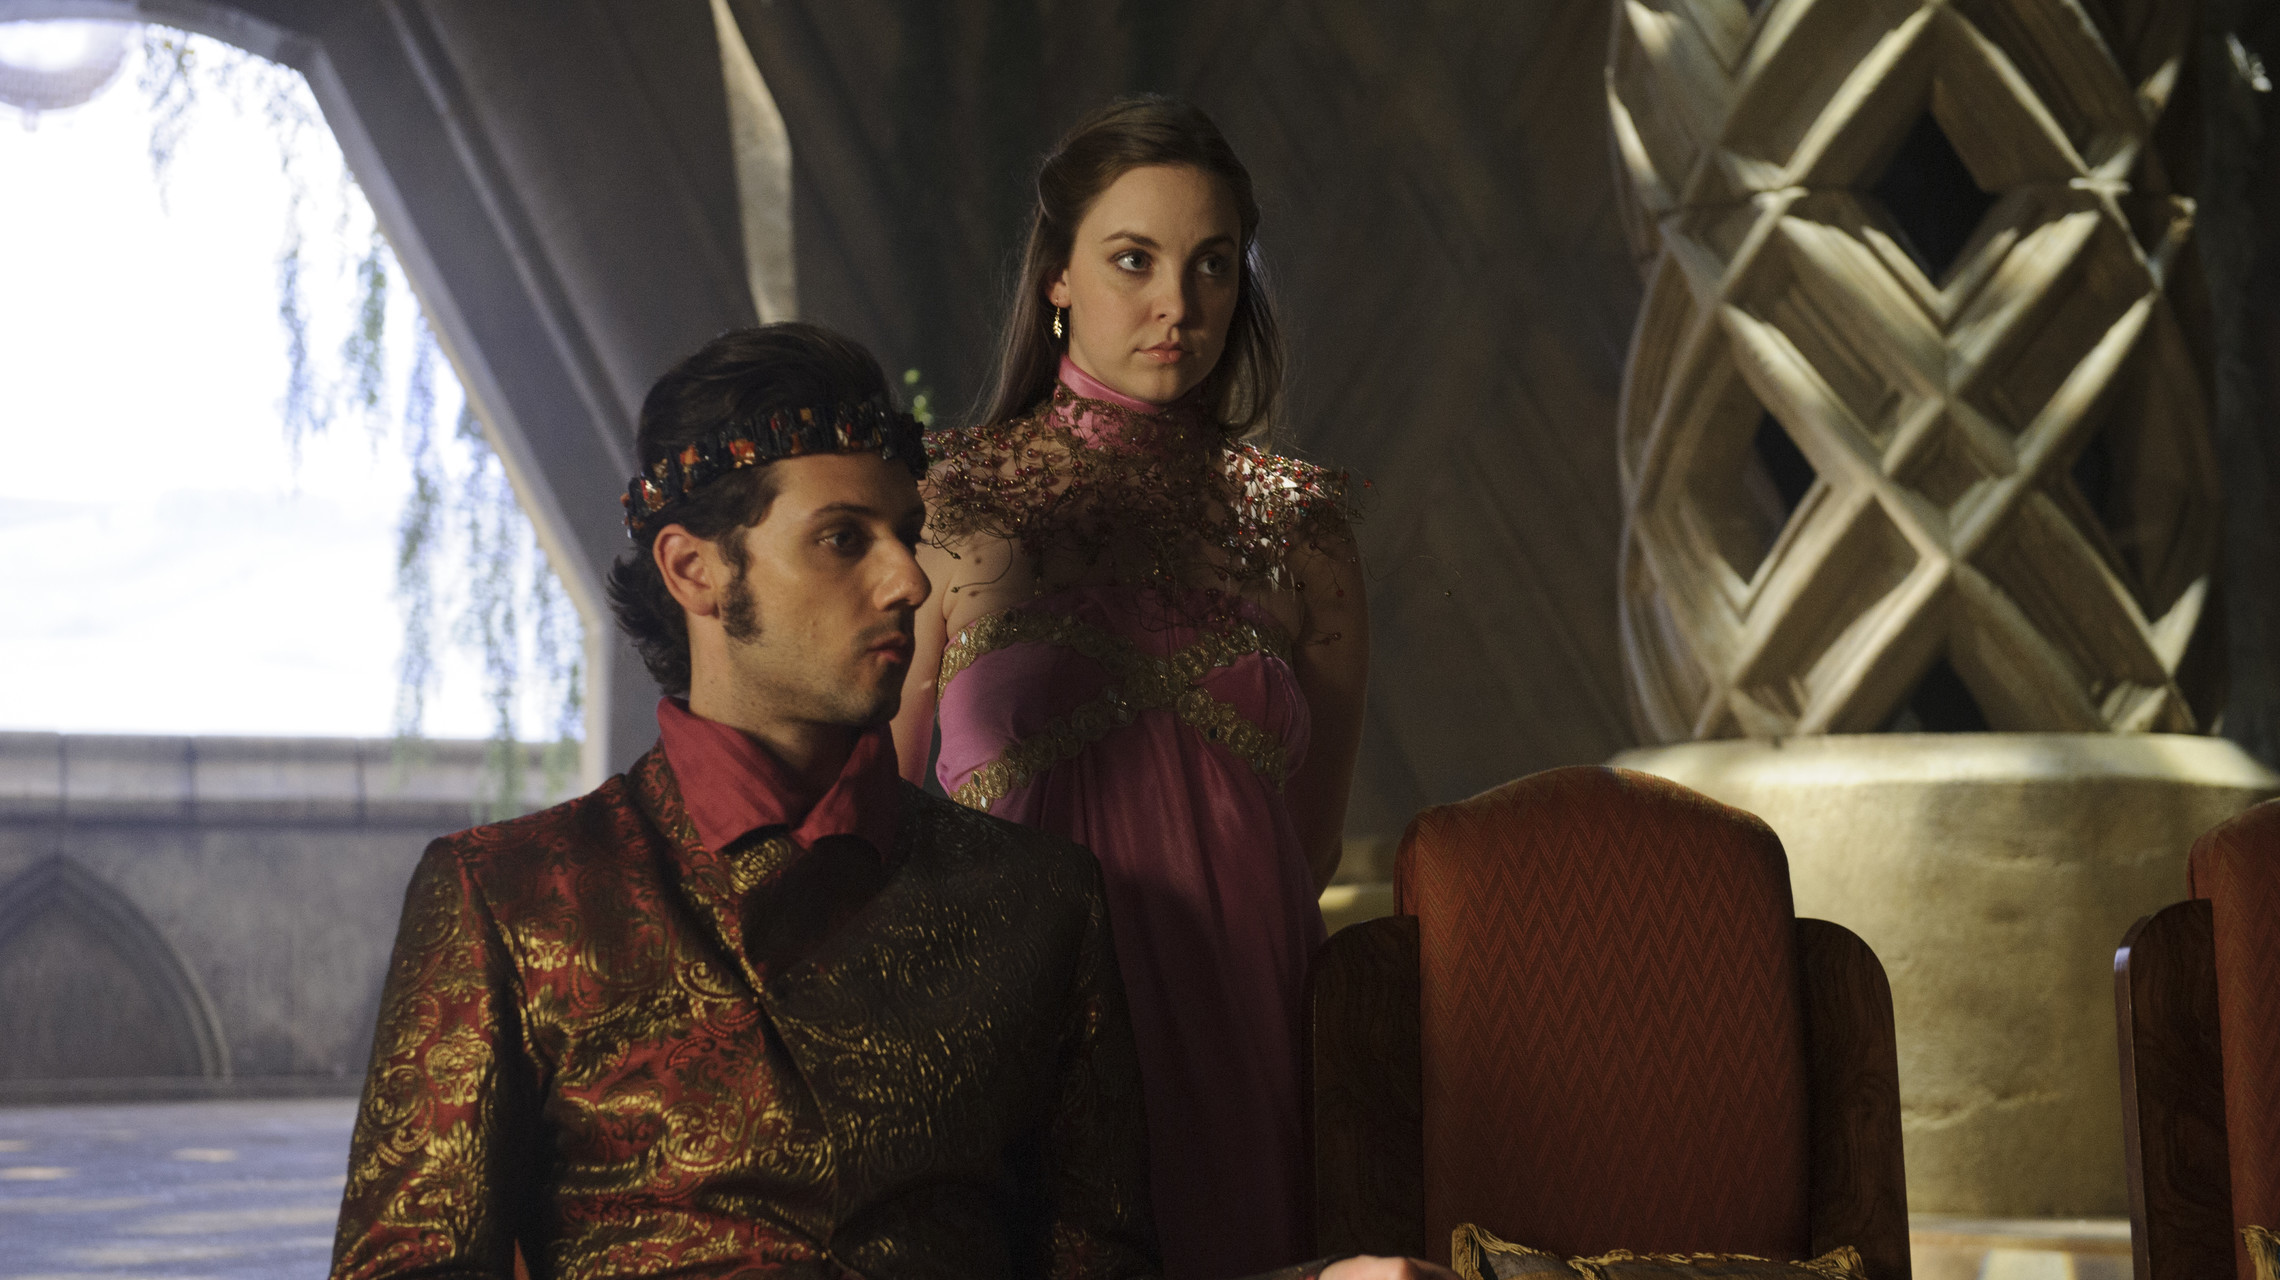 'The Magicians' Star Brittany Curran On What's Coming Next For Her Character, Saying No To Sexist Scripts, And Toxic Masculinity